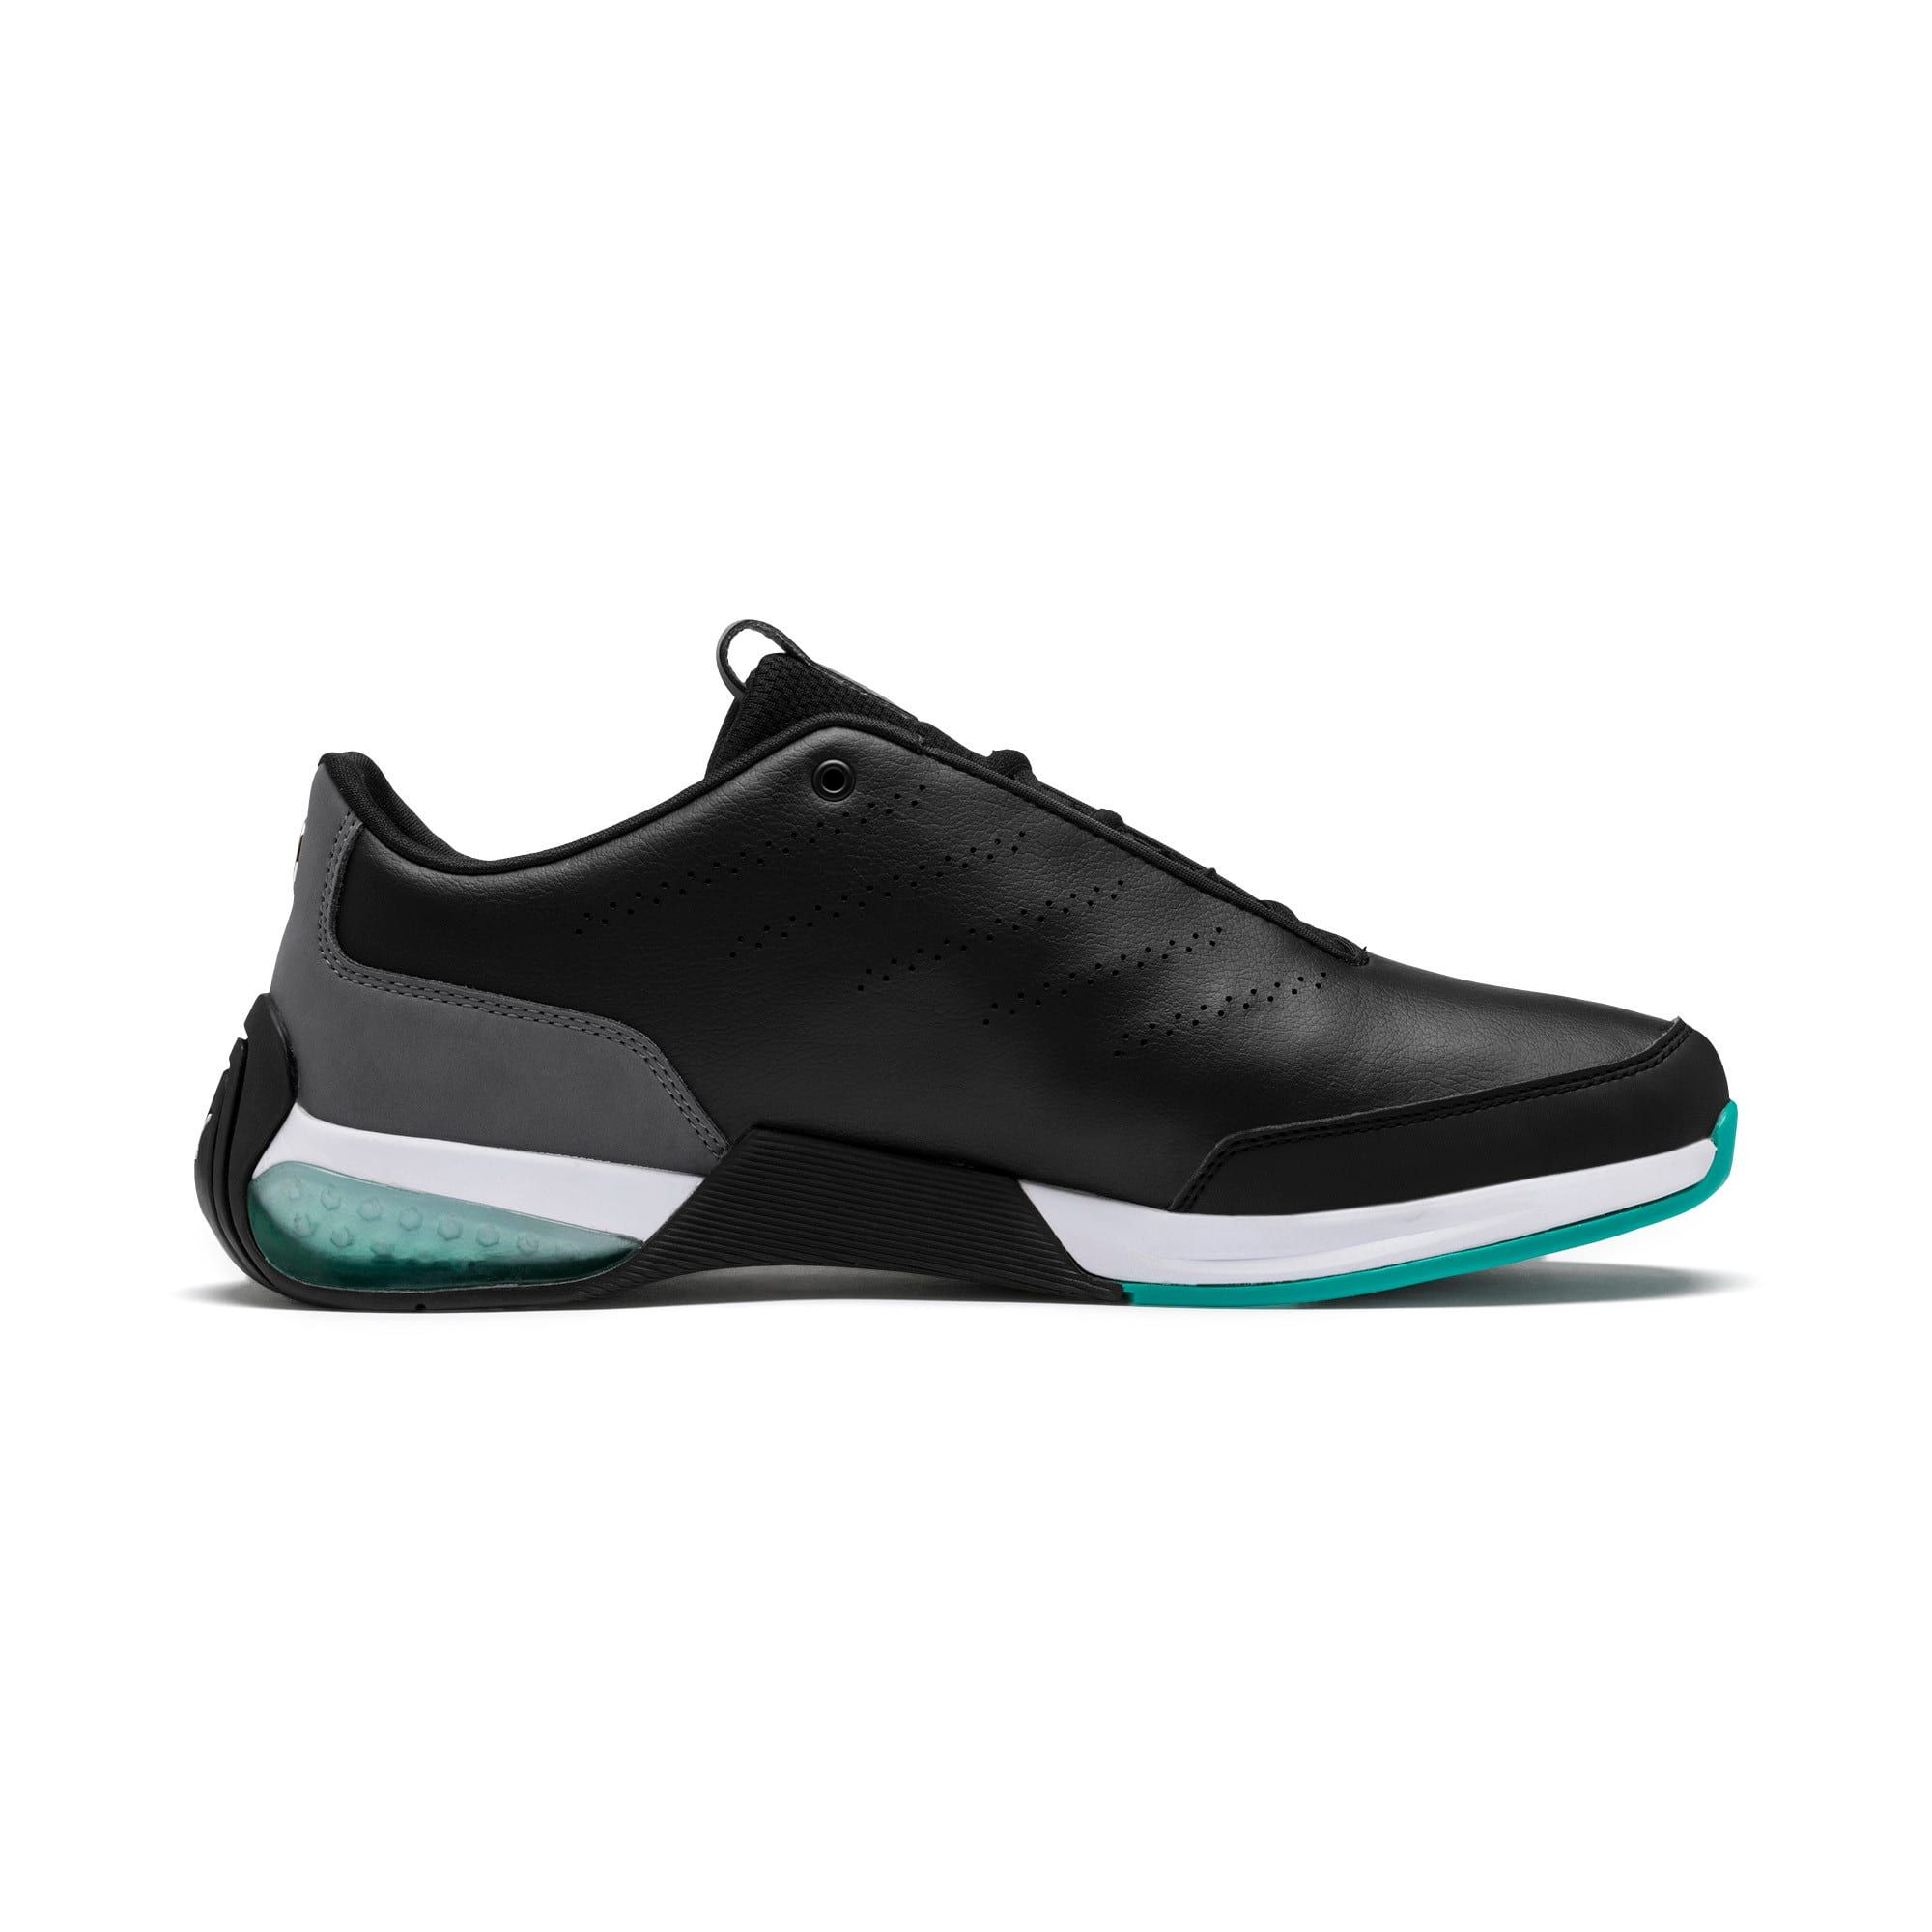 PUMA Mercedes Amg Petronas Motorsport Kart Cat x Trainers in